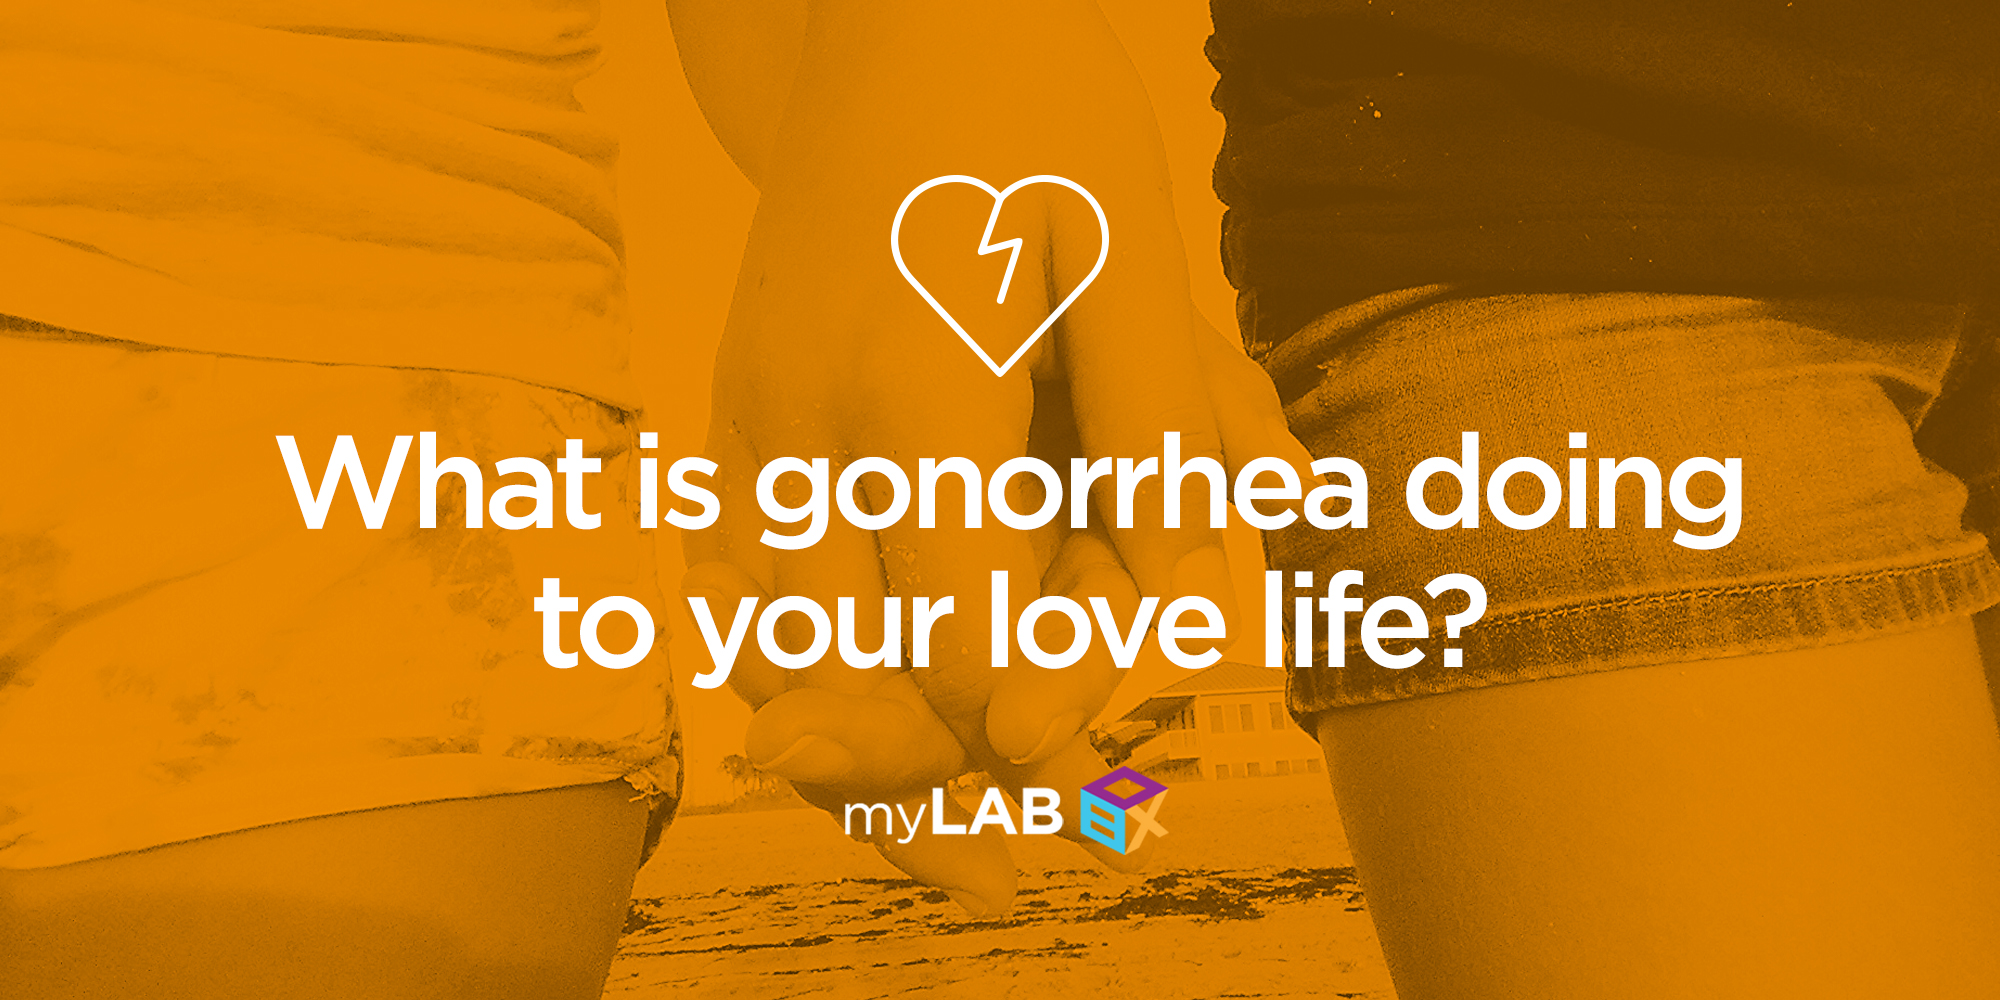 What is gonorrhea doing to your love life?